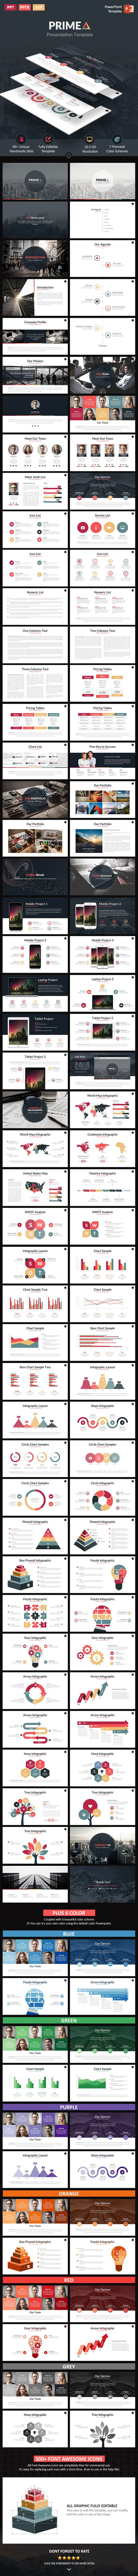 Primea - PowerPoint Presentation Template #design Download: http://graphicriver.net/item/primea-powerpoint-presentation-template/11828976?ref=ksioks